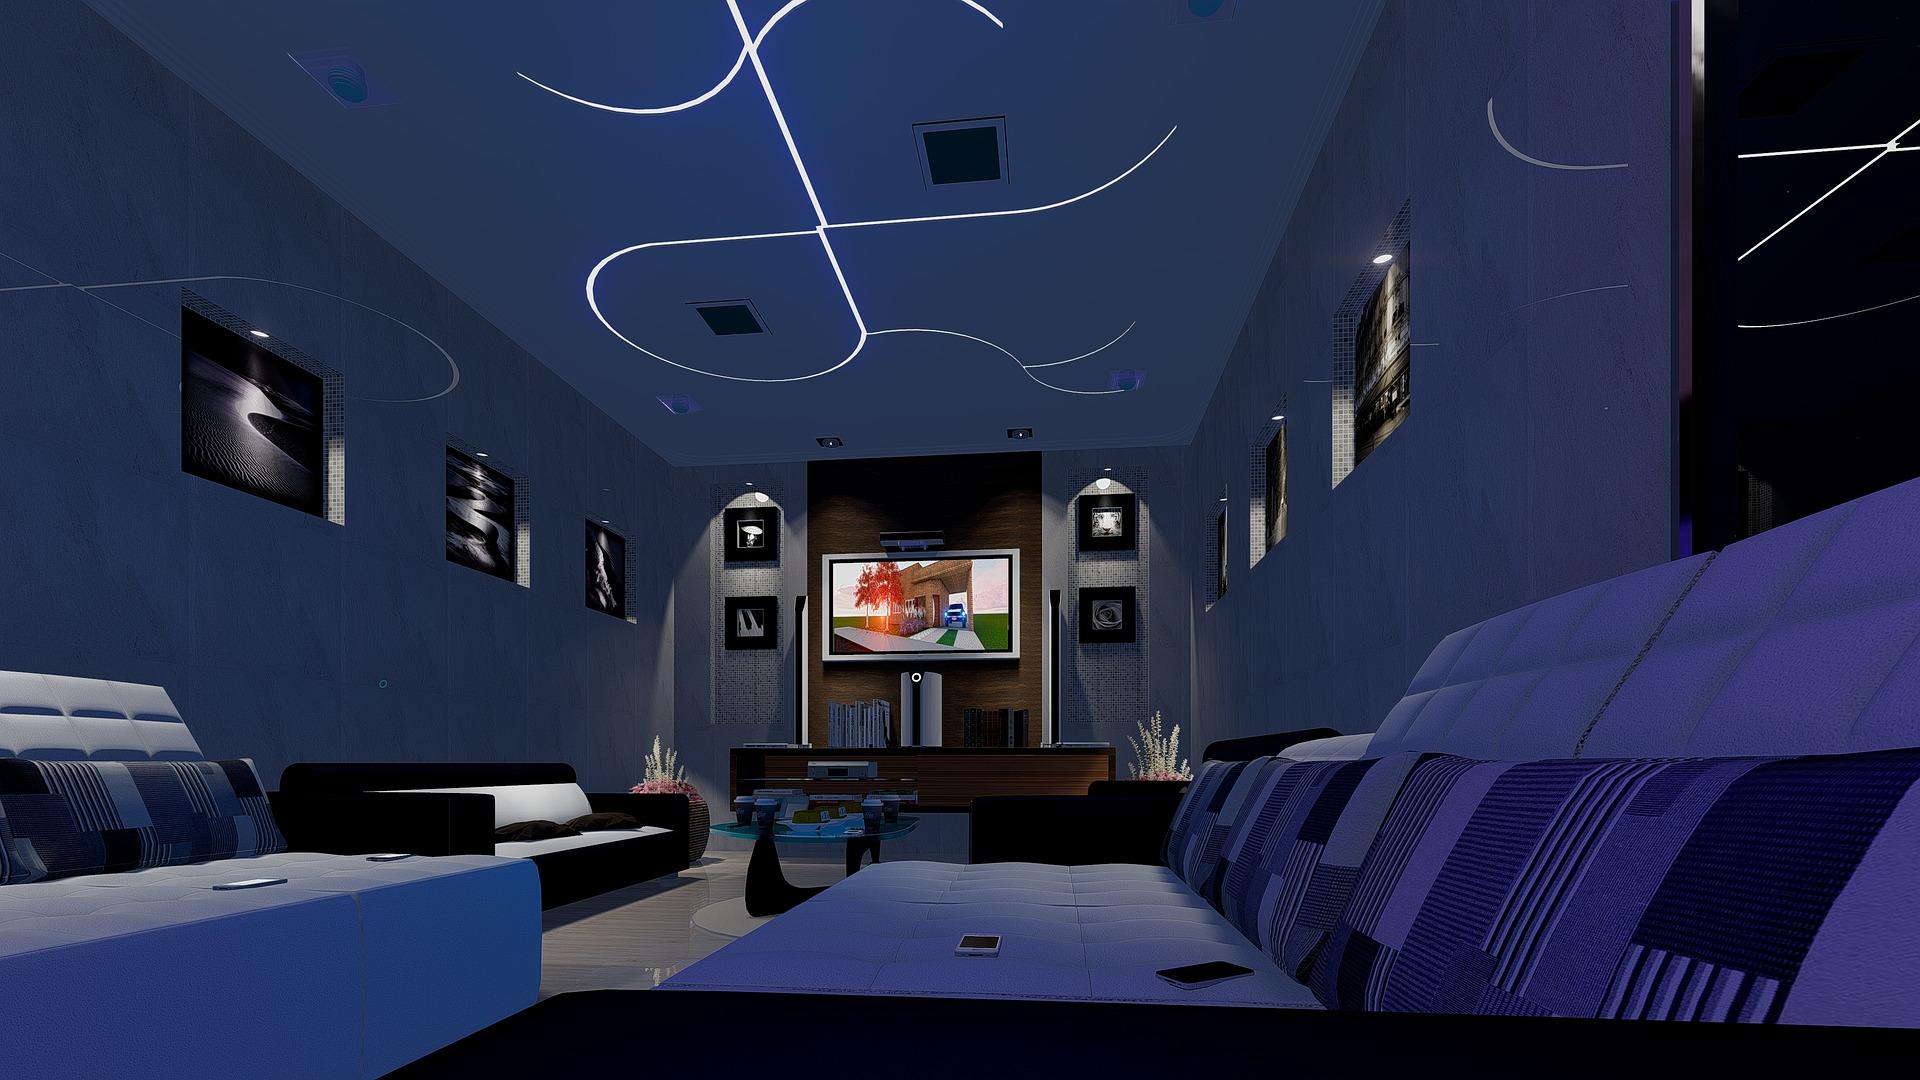 Home Theatre Installation Tips From the Pros